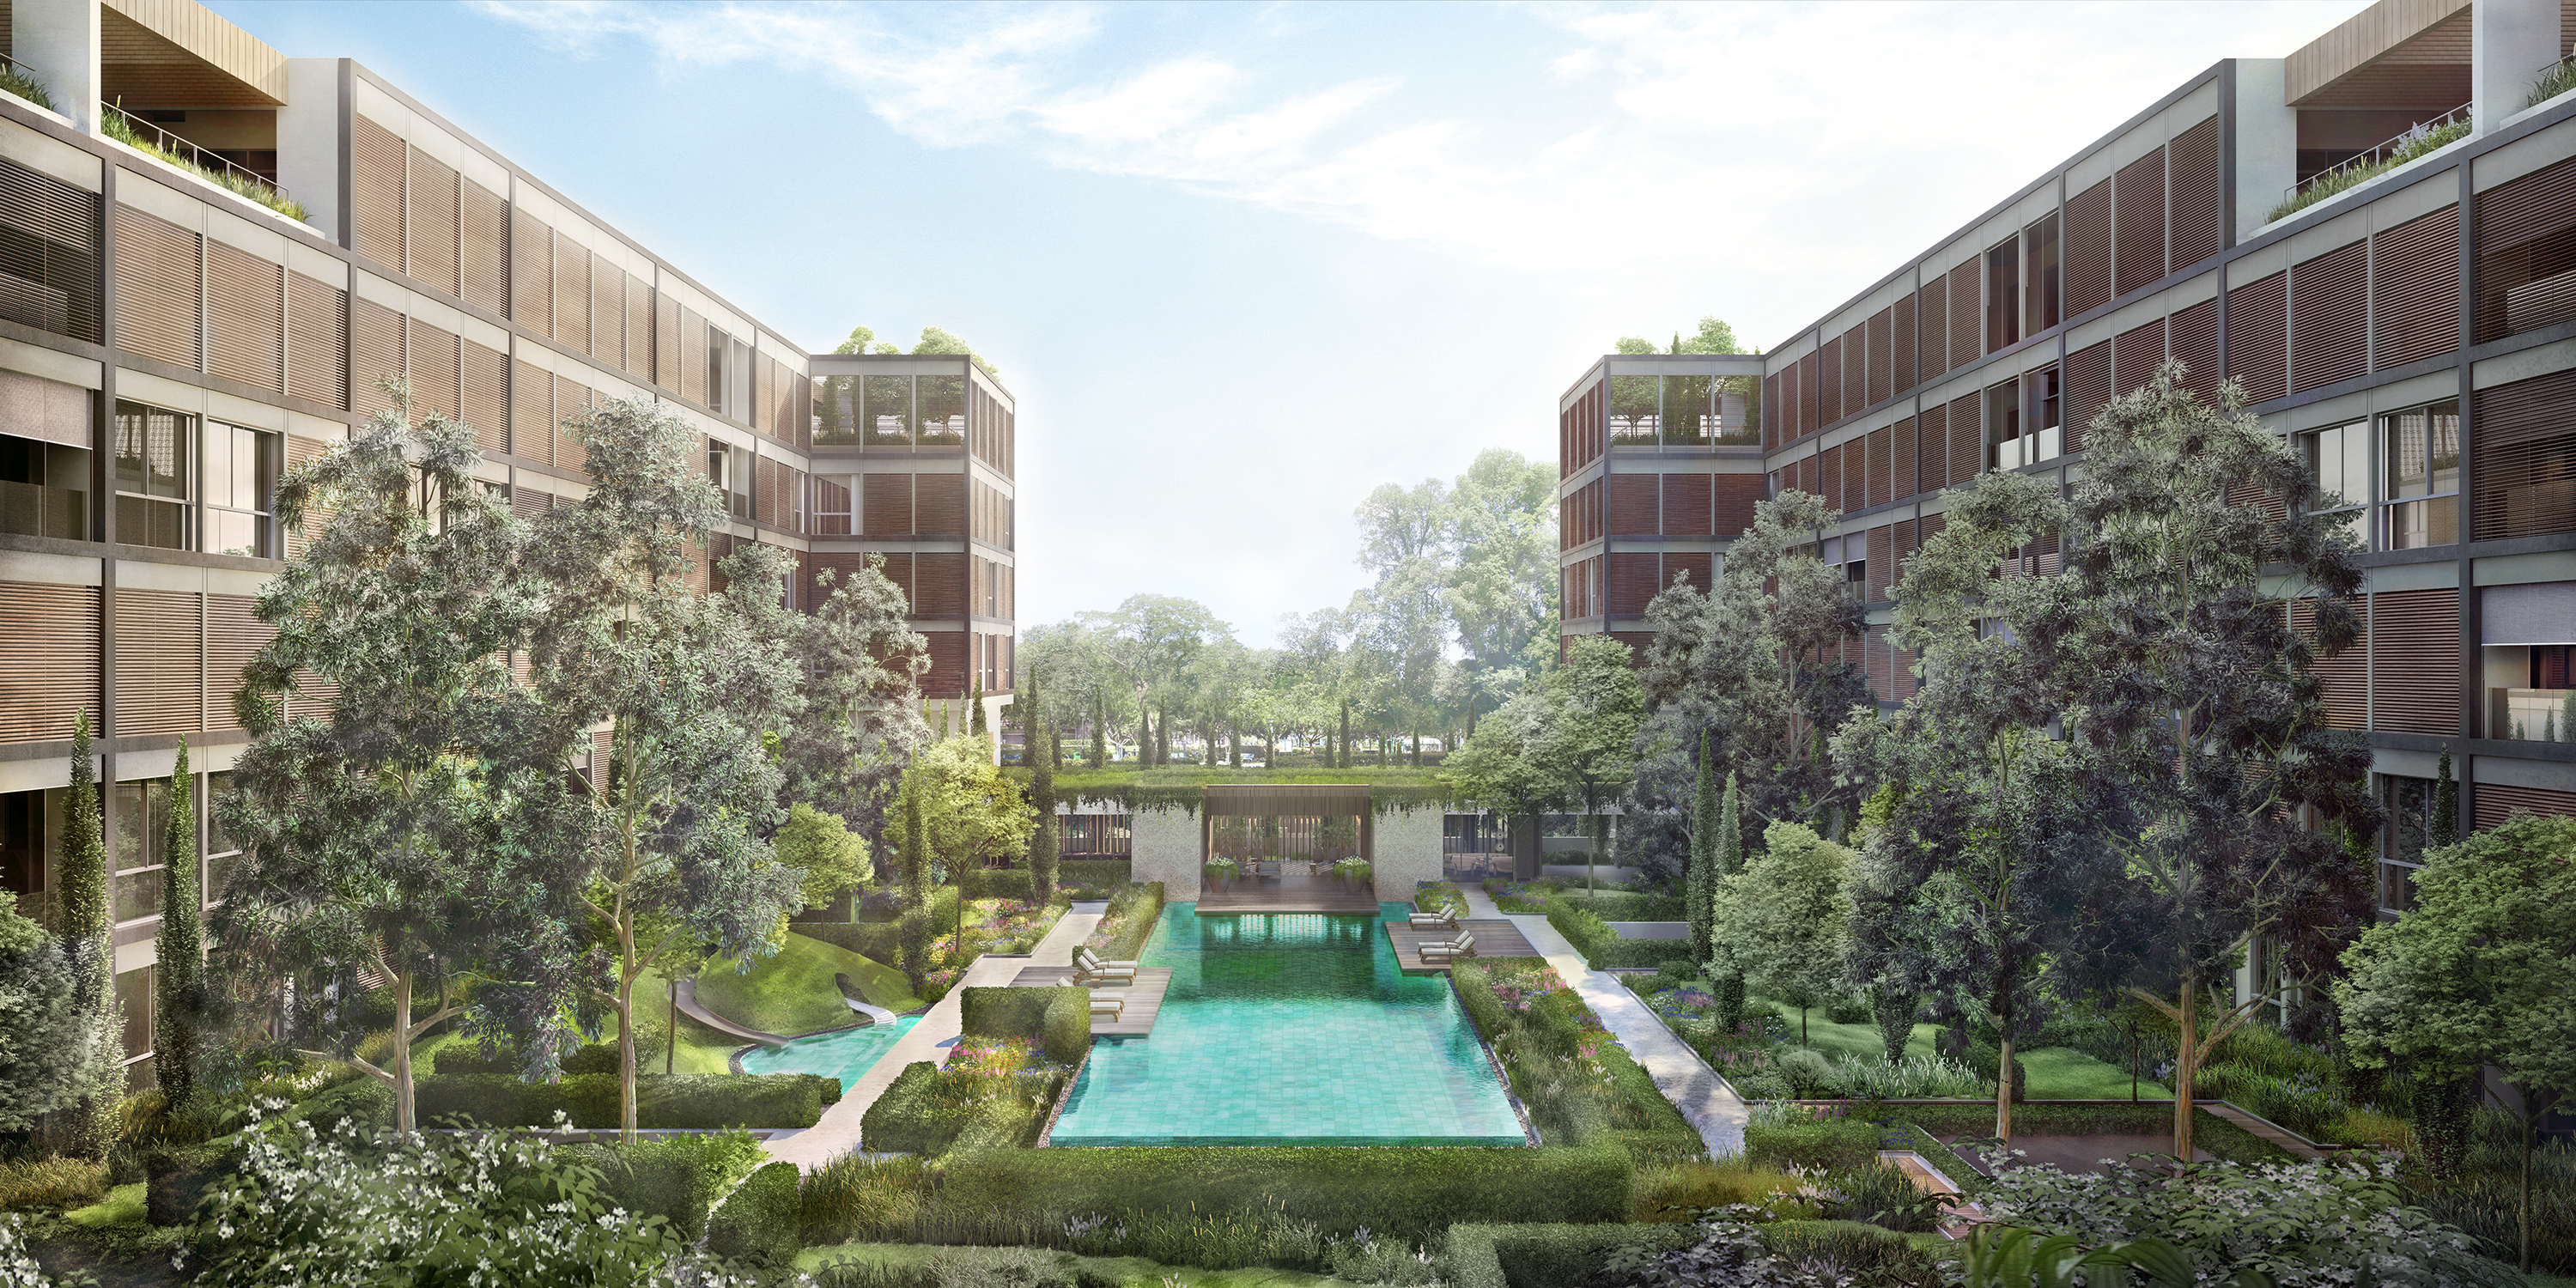 06 View of Courtyard from Lvl 4 - Luxury Property Segment